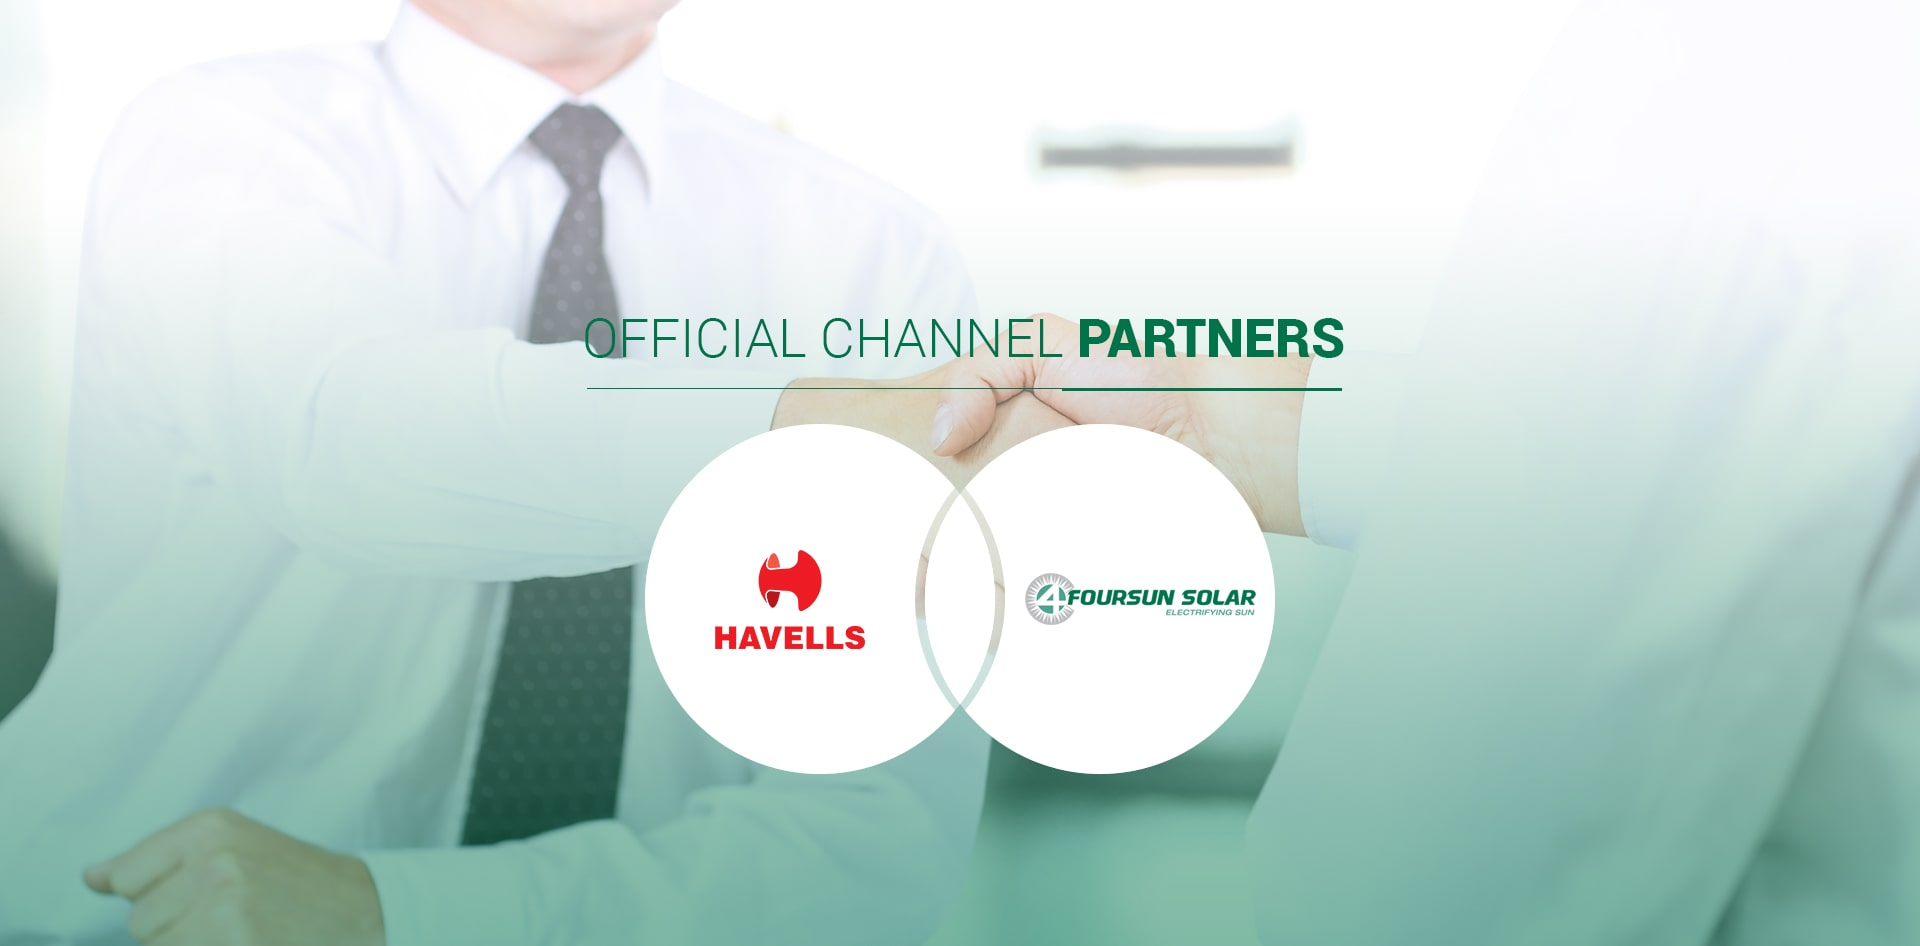 official channel partners